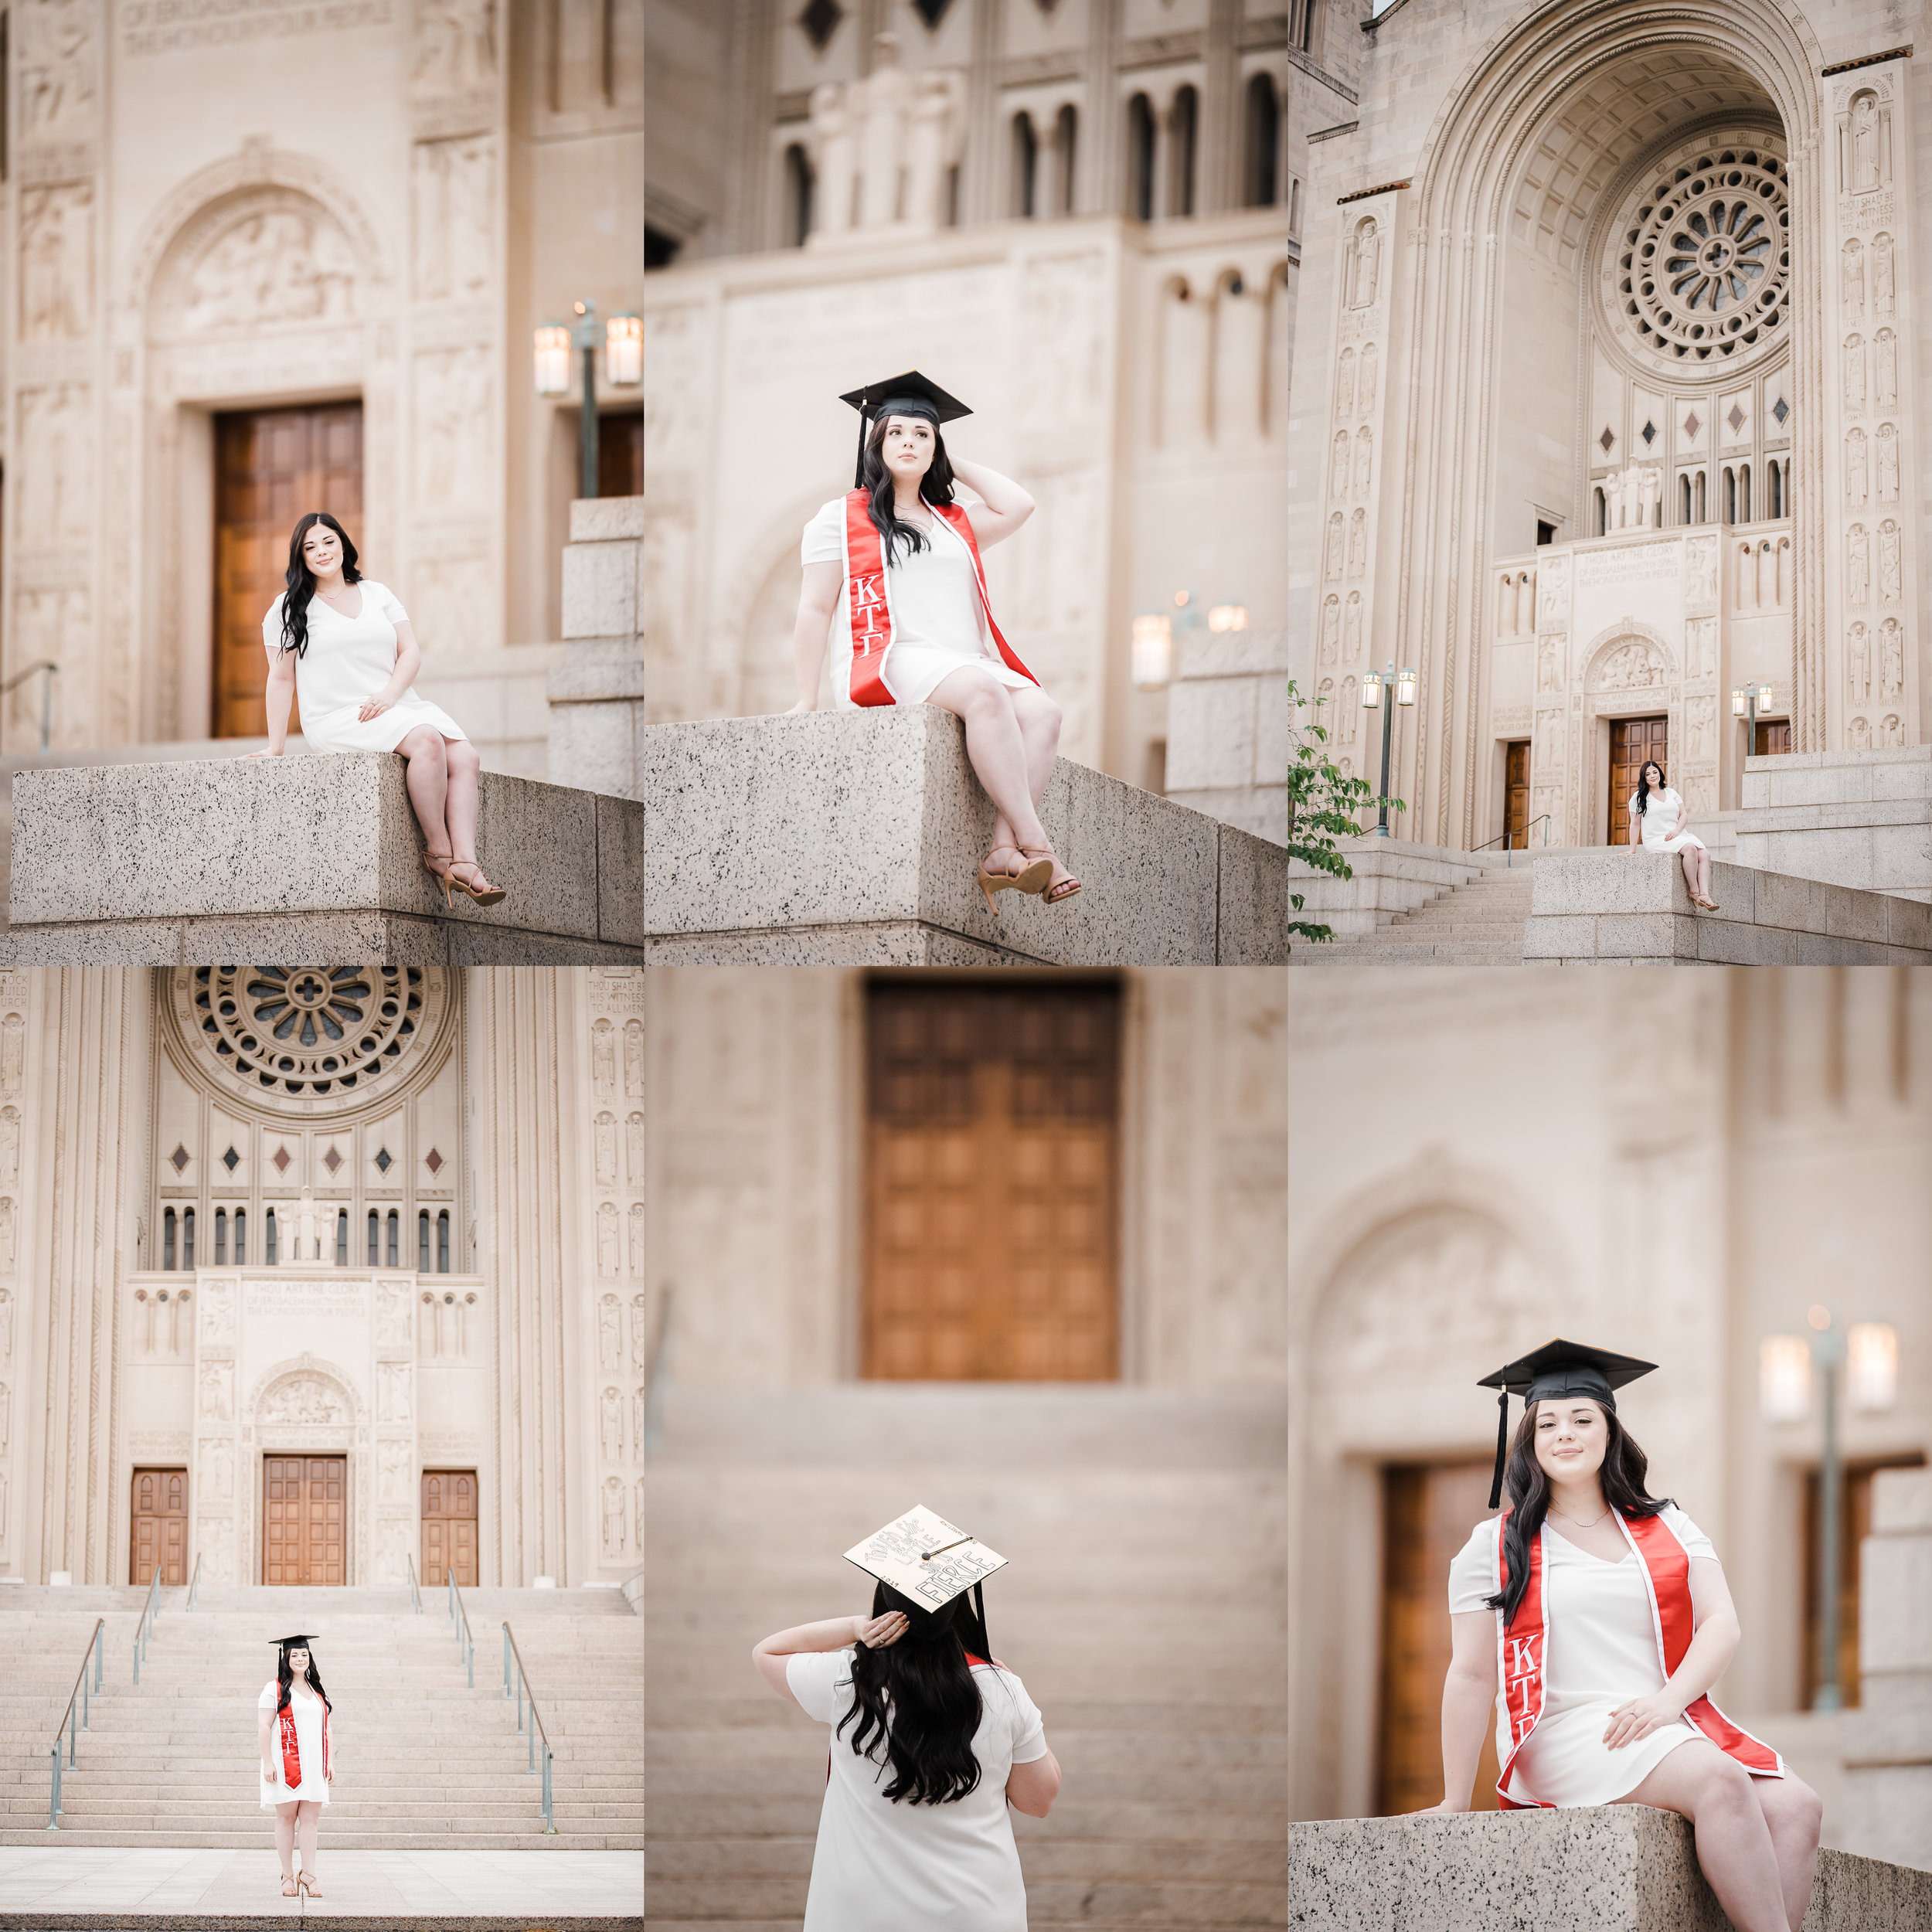 Basilica of the National Shrine of the Immaculate Conception senior photos